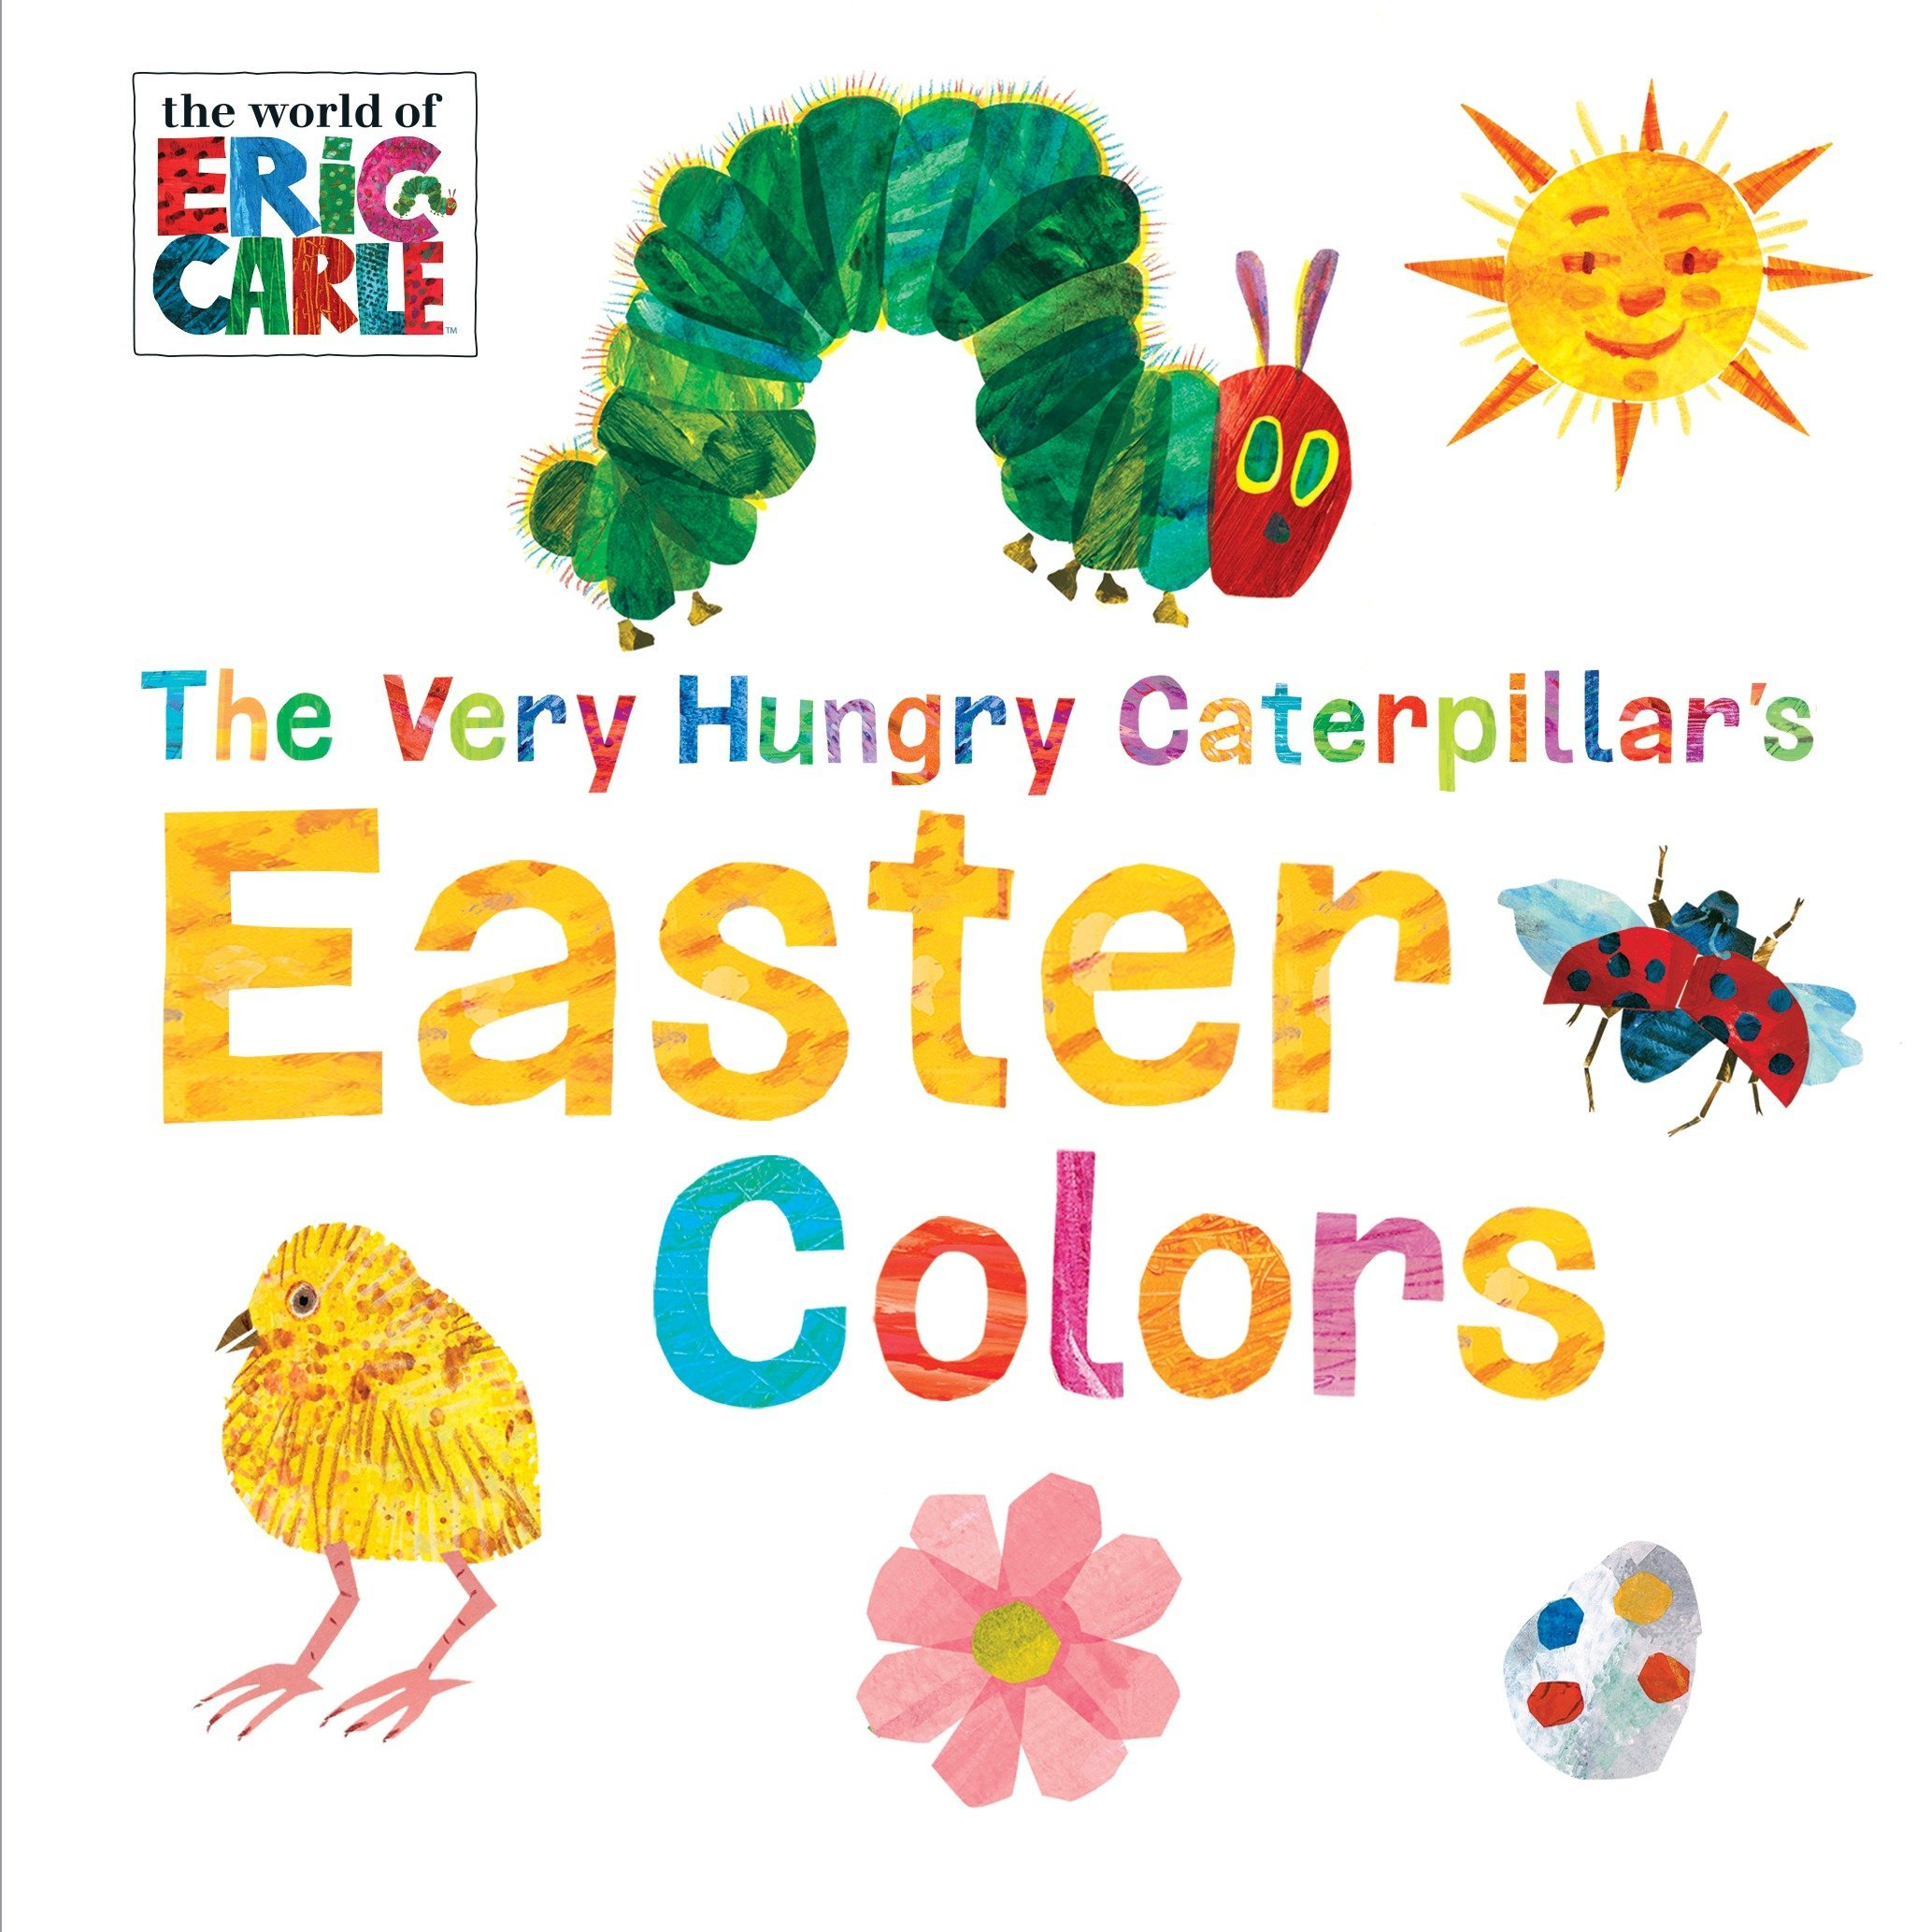 Amazon.com: The Very Hungry Caterpillar's Easter Colors (World of Eric  Carle) (9780451533470): Eric Carle: Books